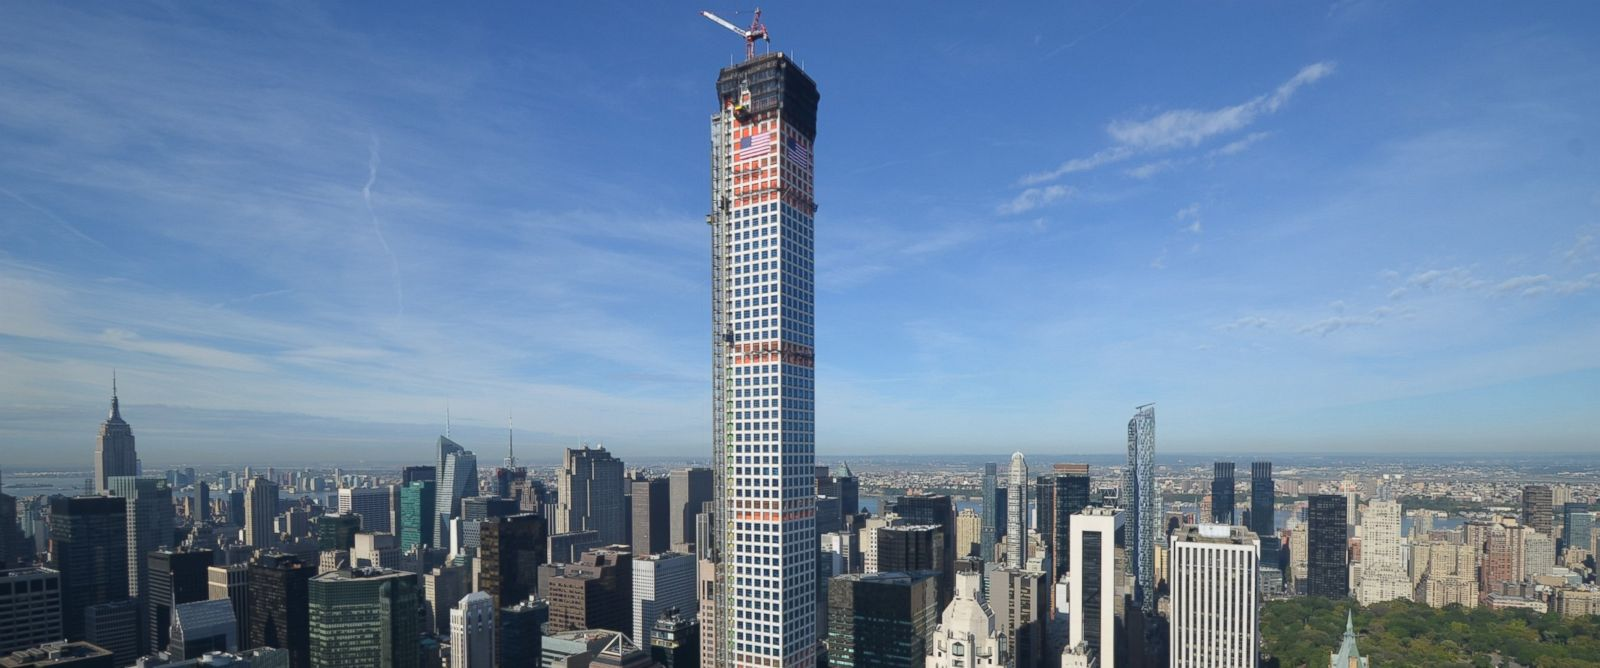 PHOTO: This location at 432 Park Ave. in NYC is the tallest residential building in the western hemisphere.